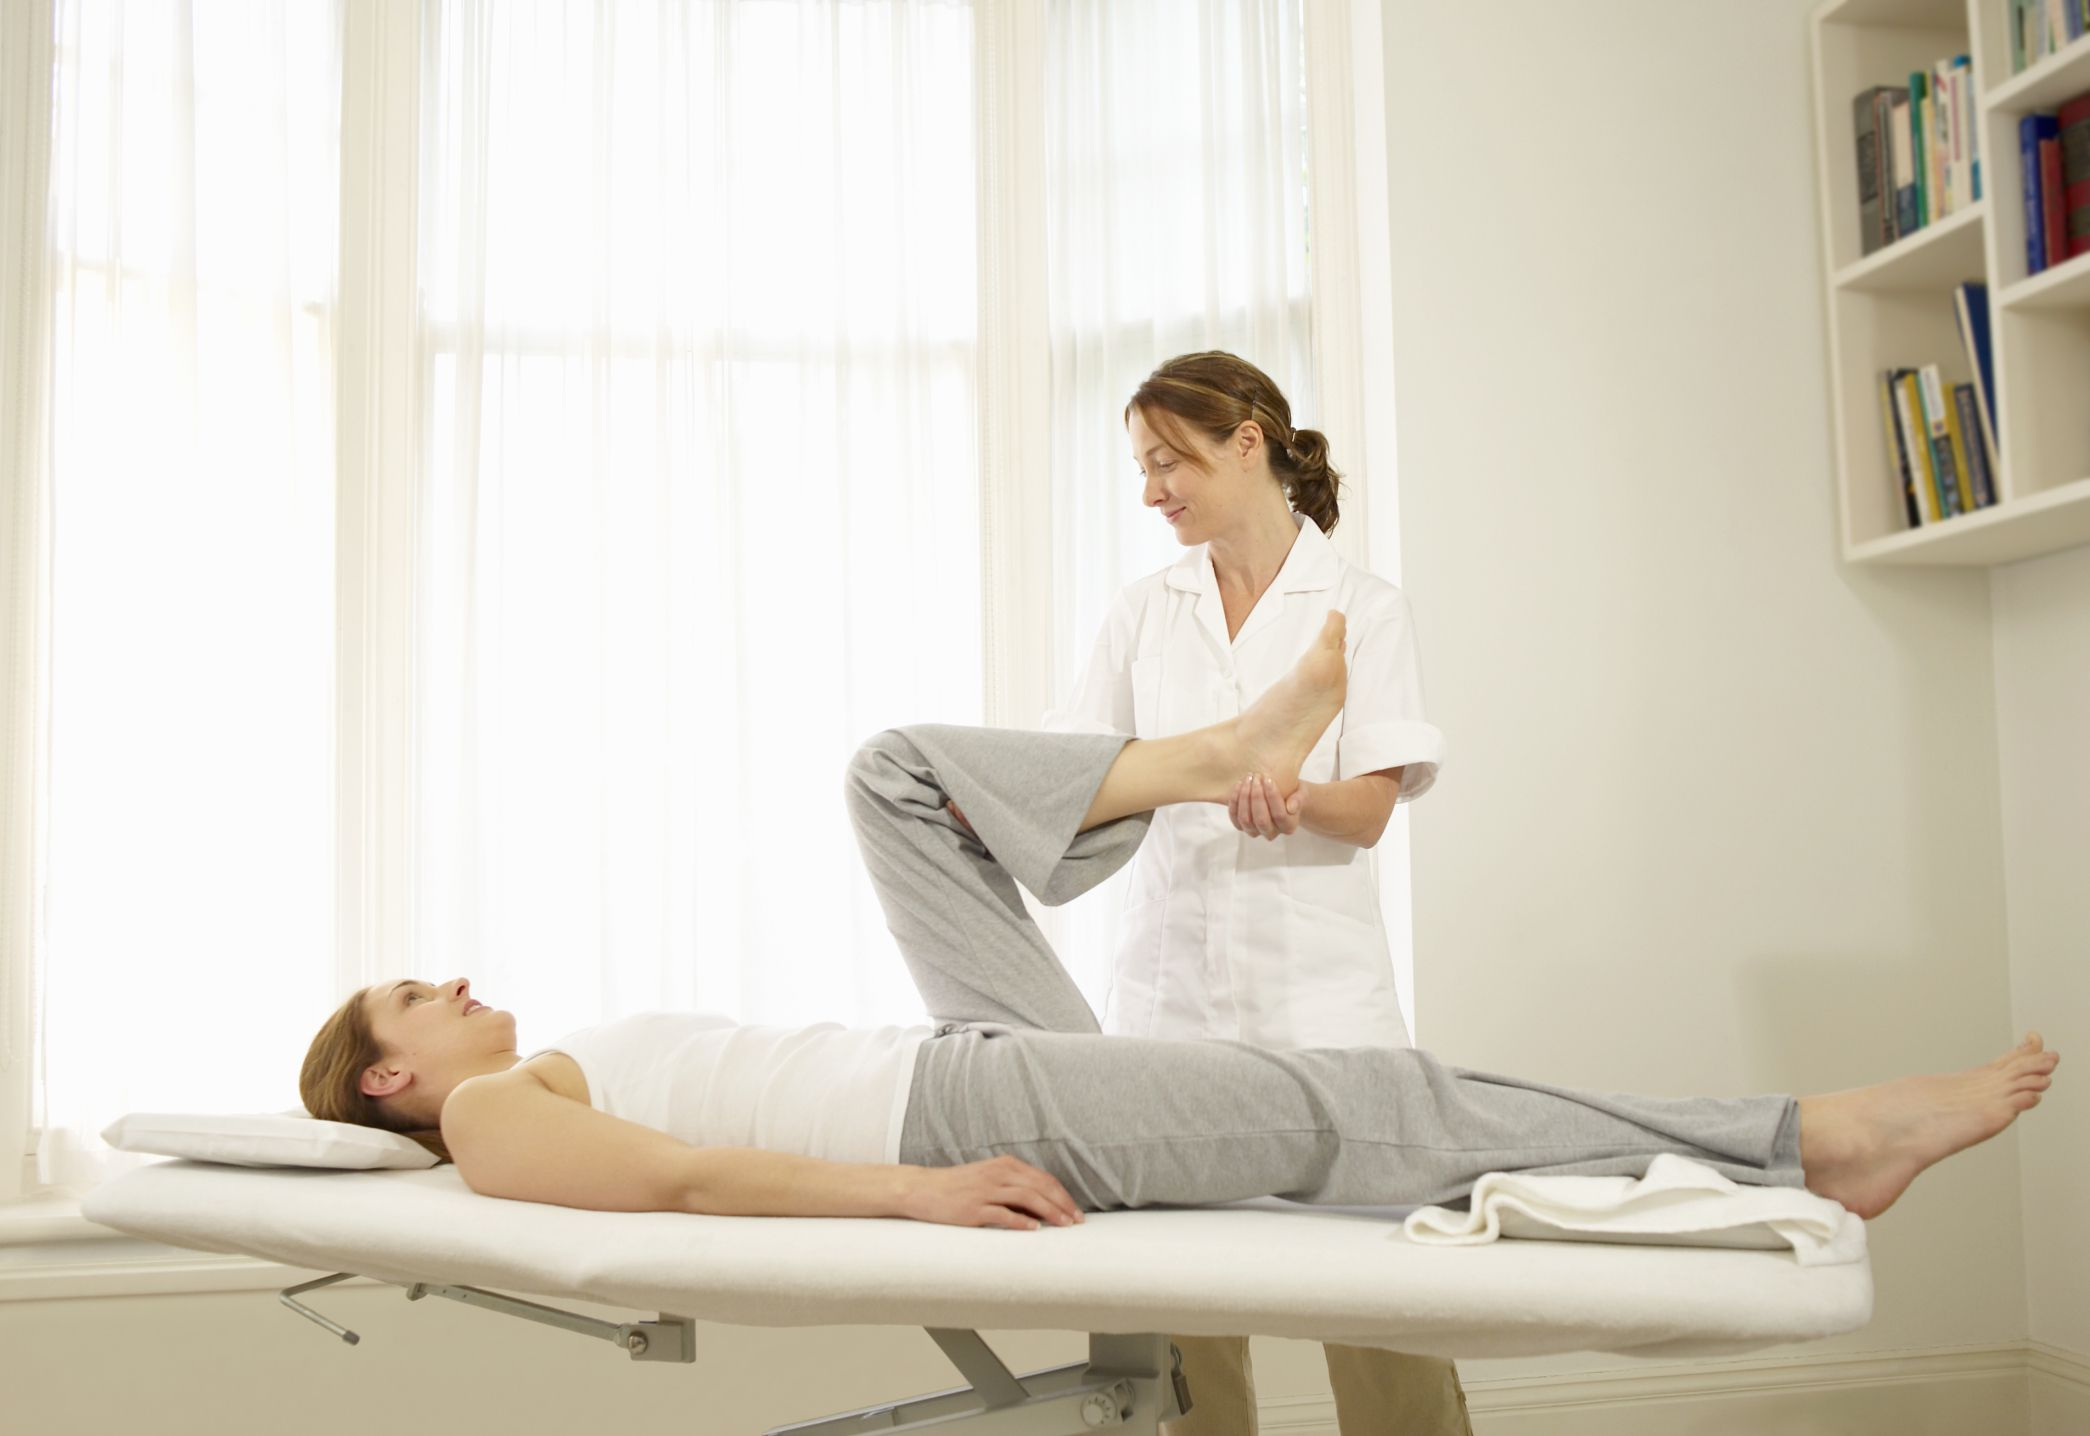 A physical therapist working with her patient